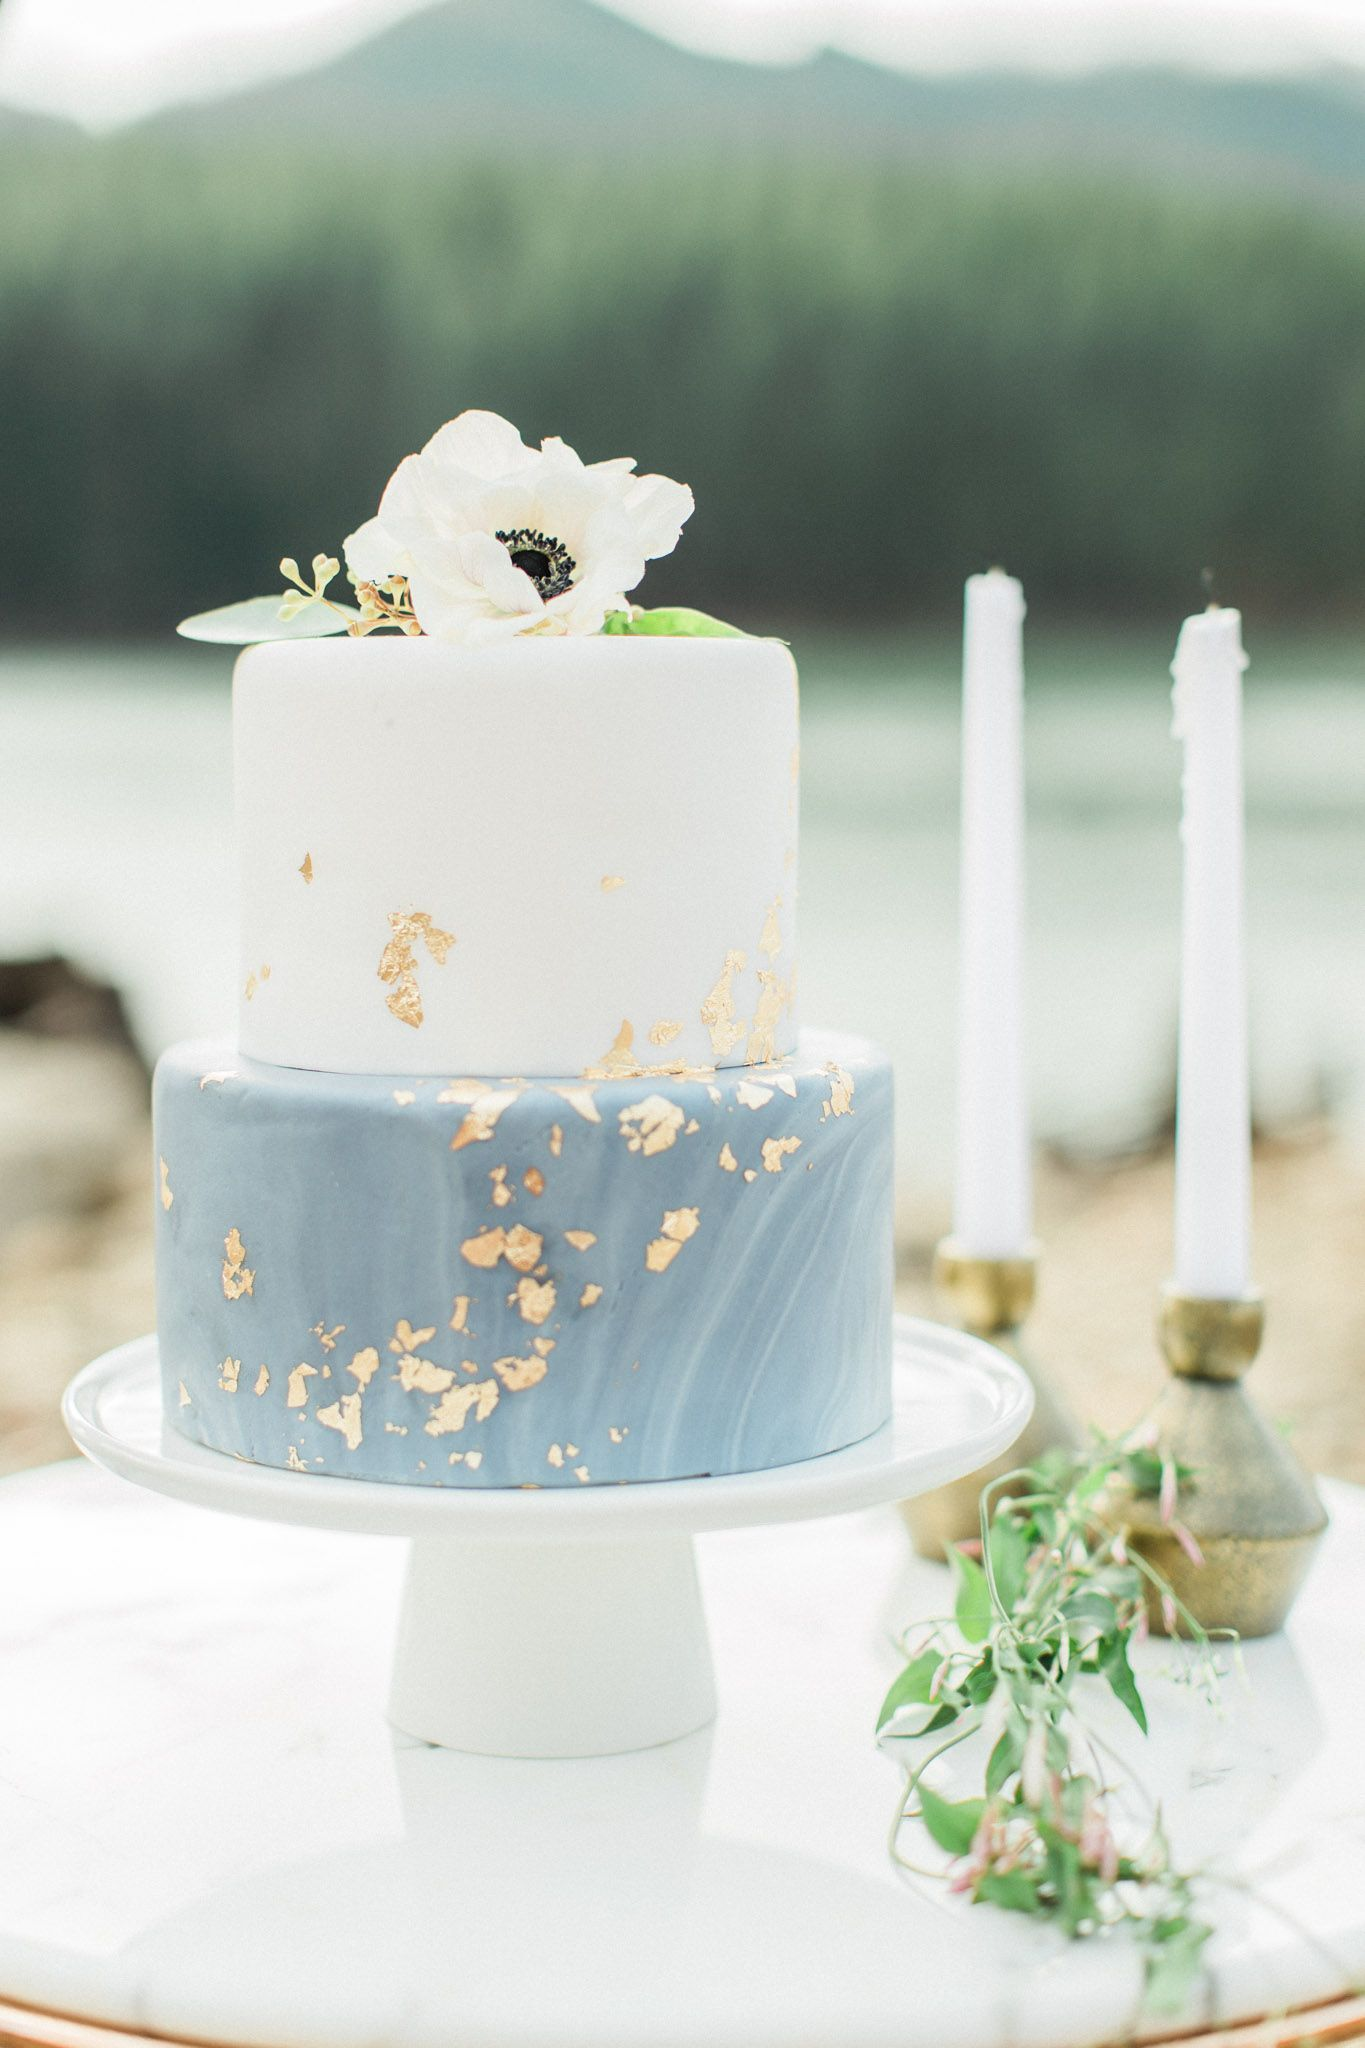 9 Lovely Wedding Cake Ideas That Will Wow Your Guests -   15 cake Wedding blue ideas